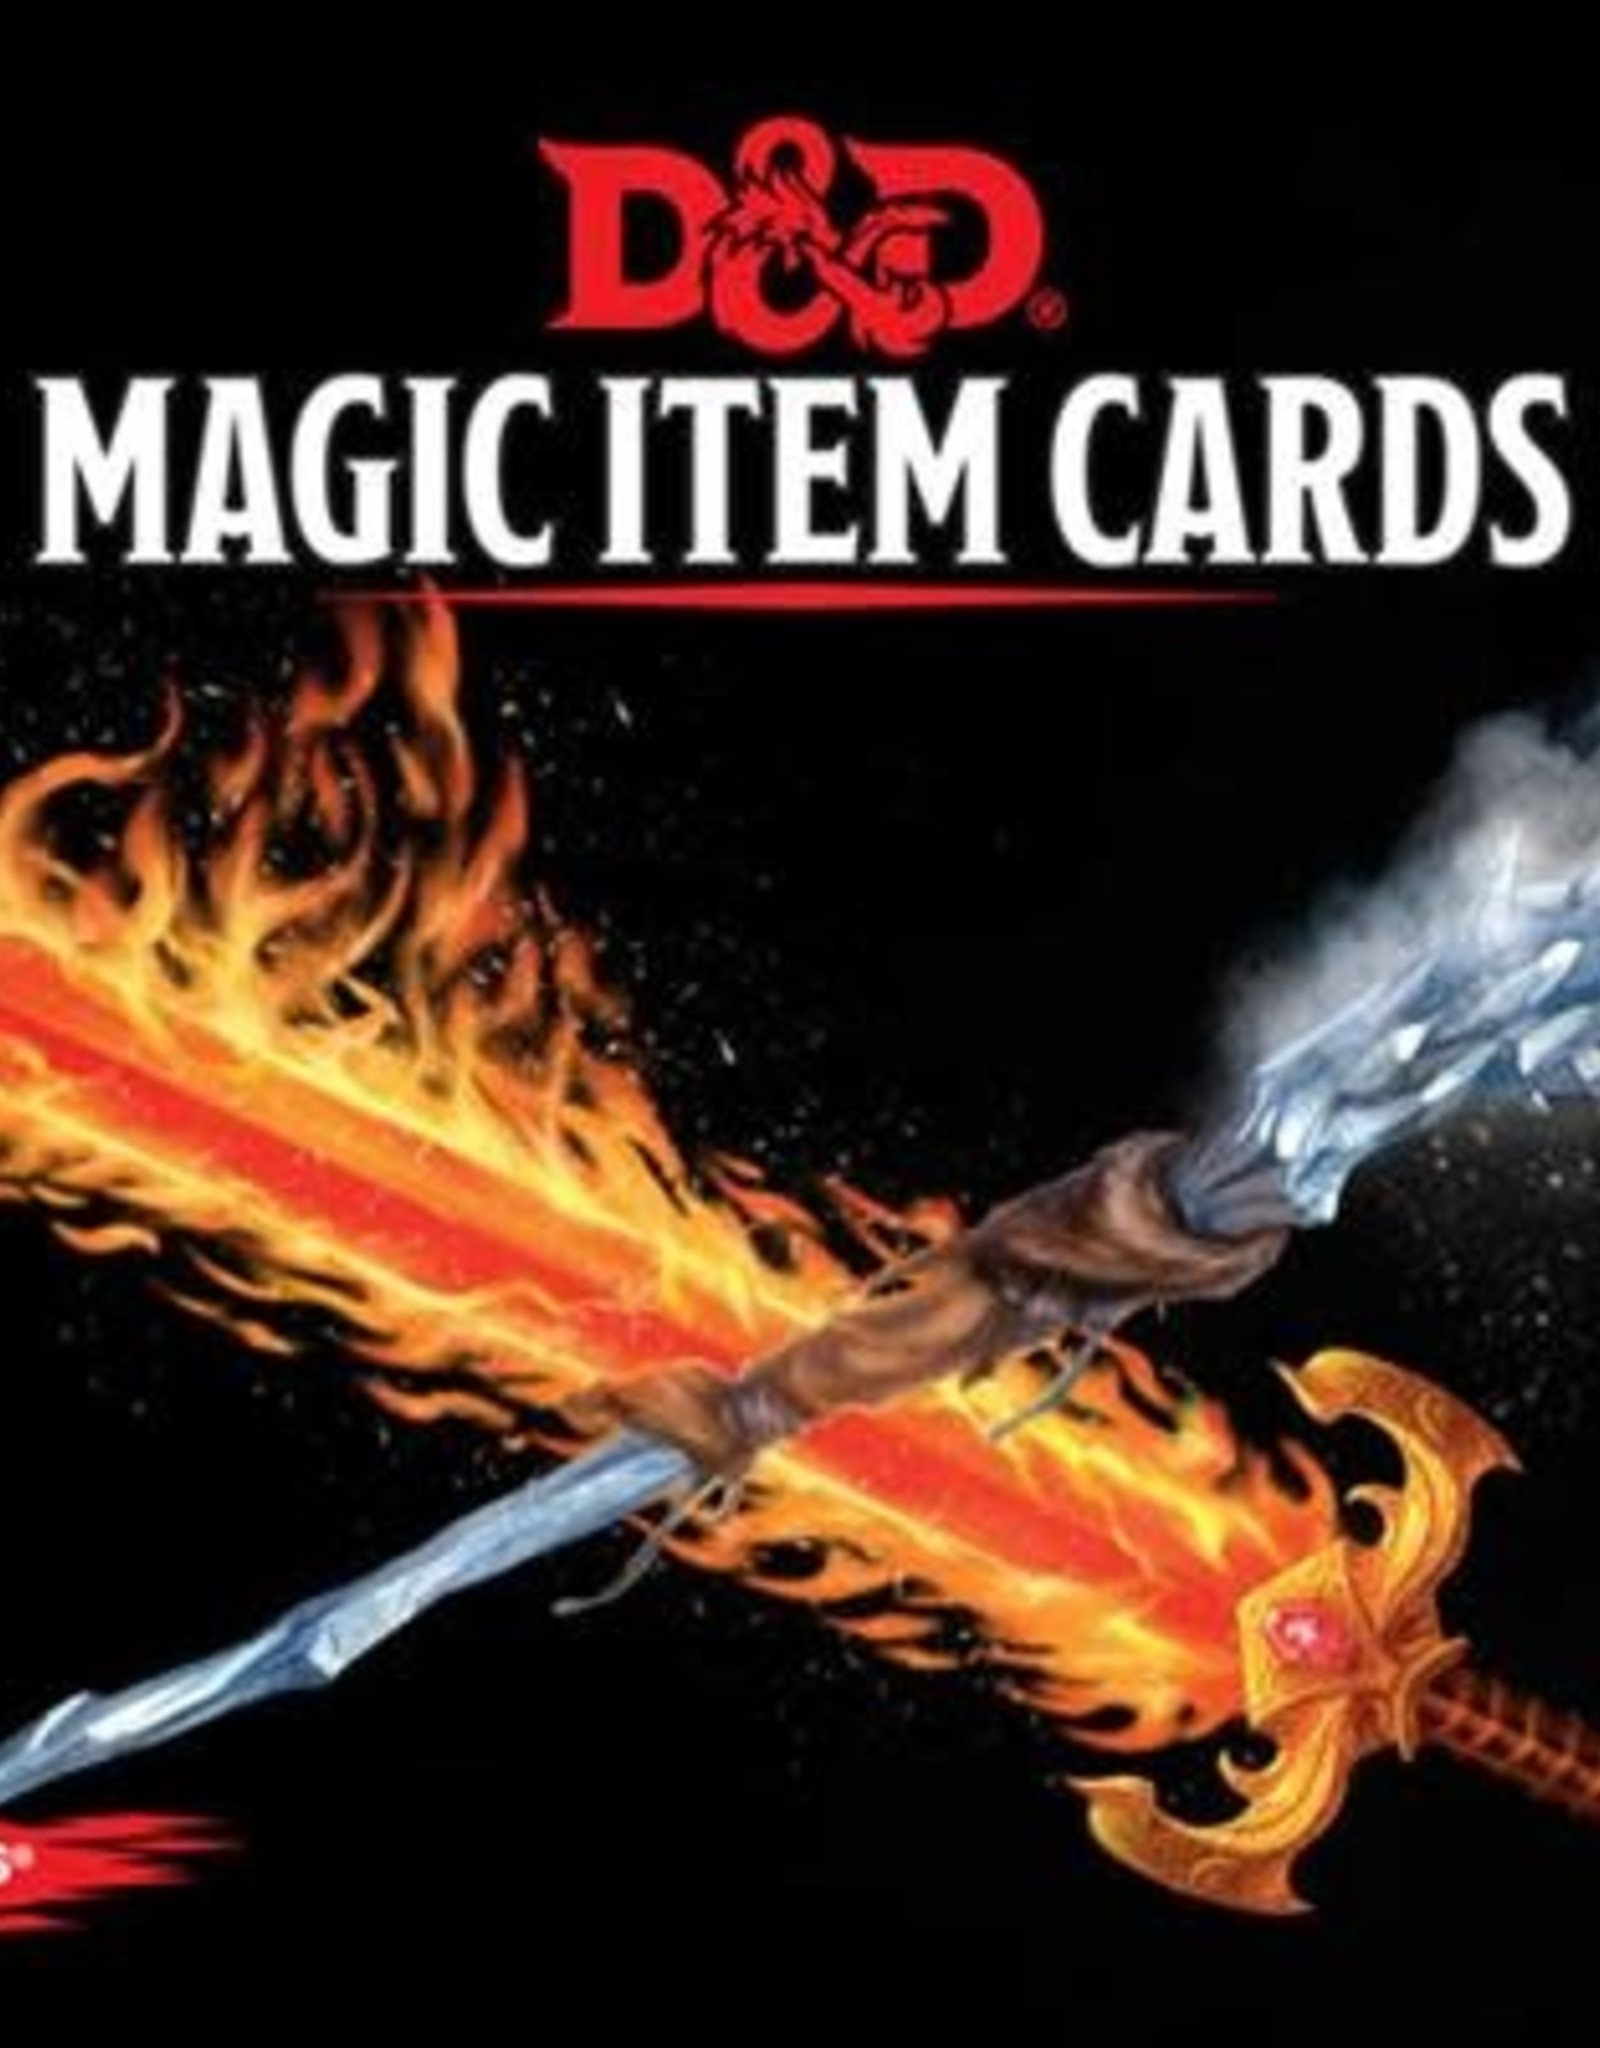 Wizards of the Coast Dungeons & Dragons Magic Item Cards